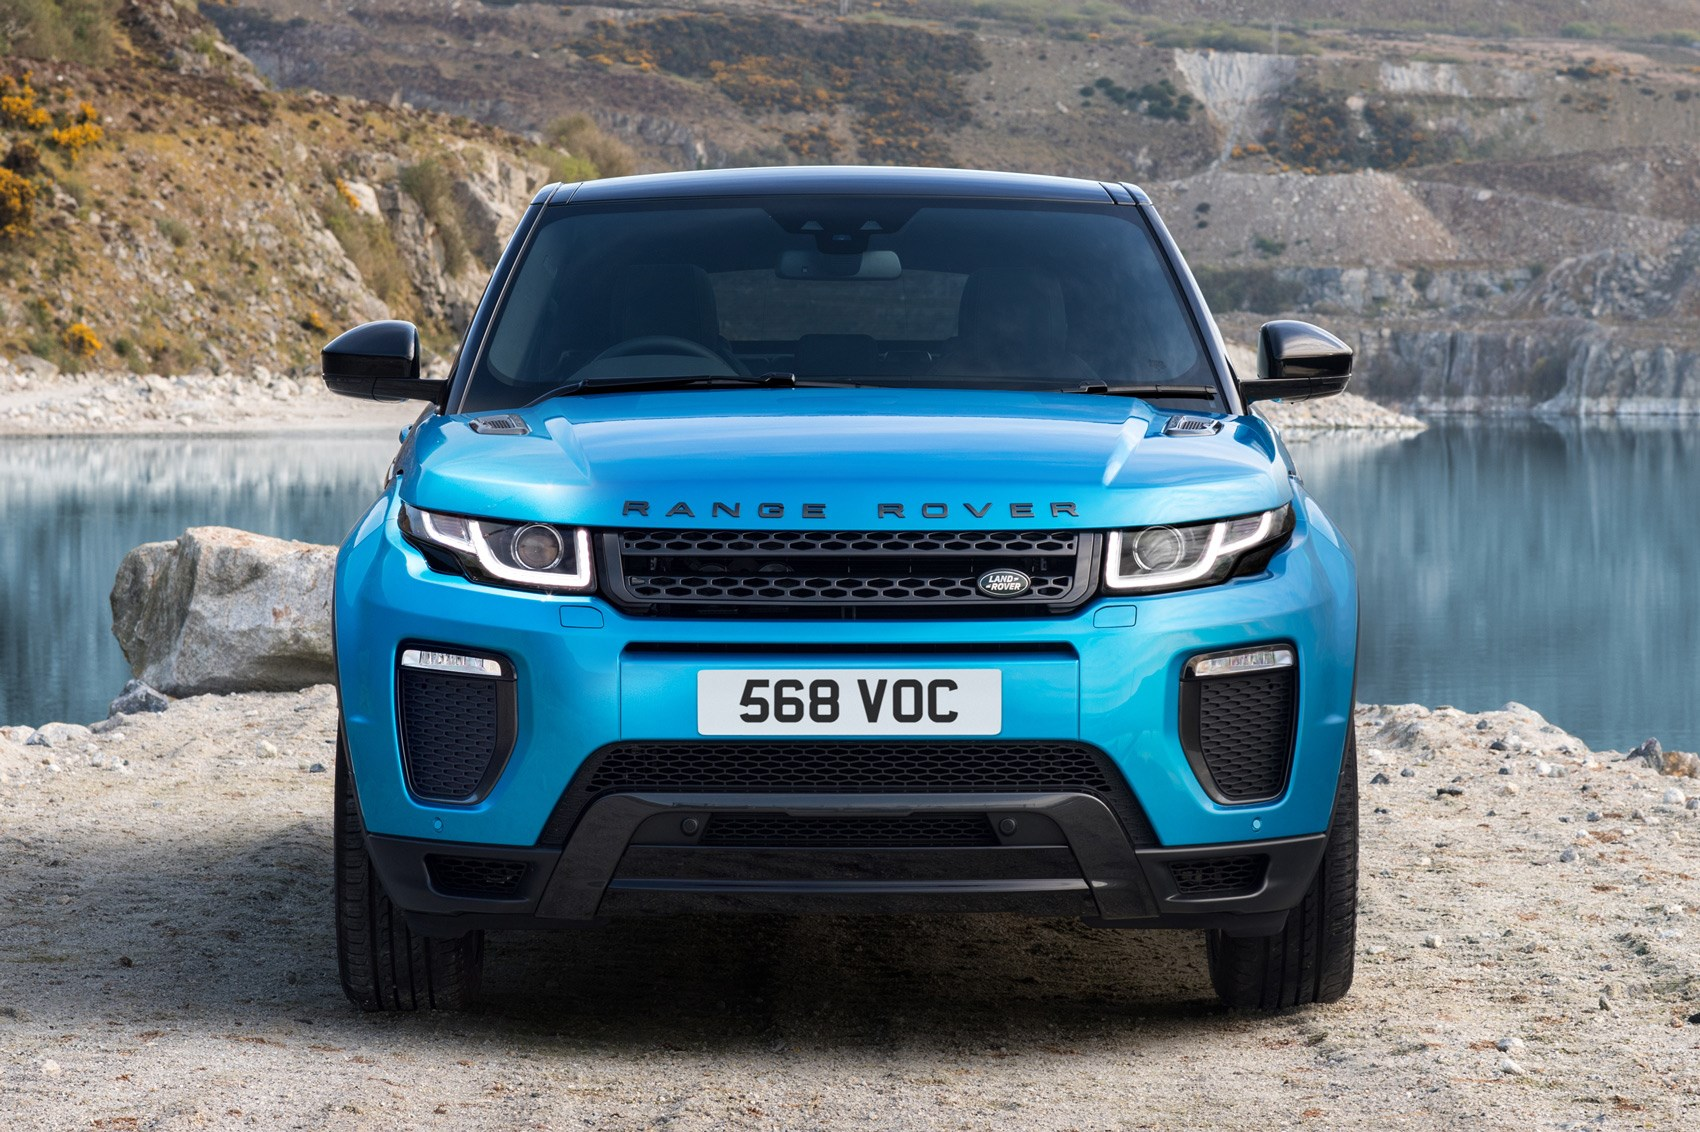 Range Rover Evoque Landmark edition celebrates sales success by